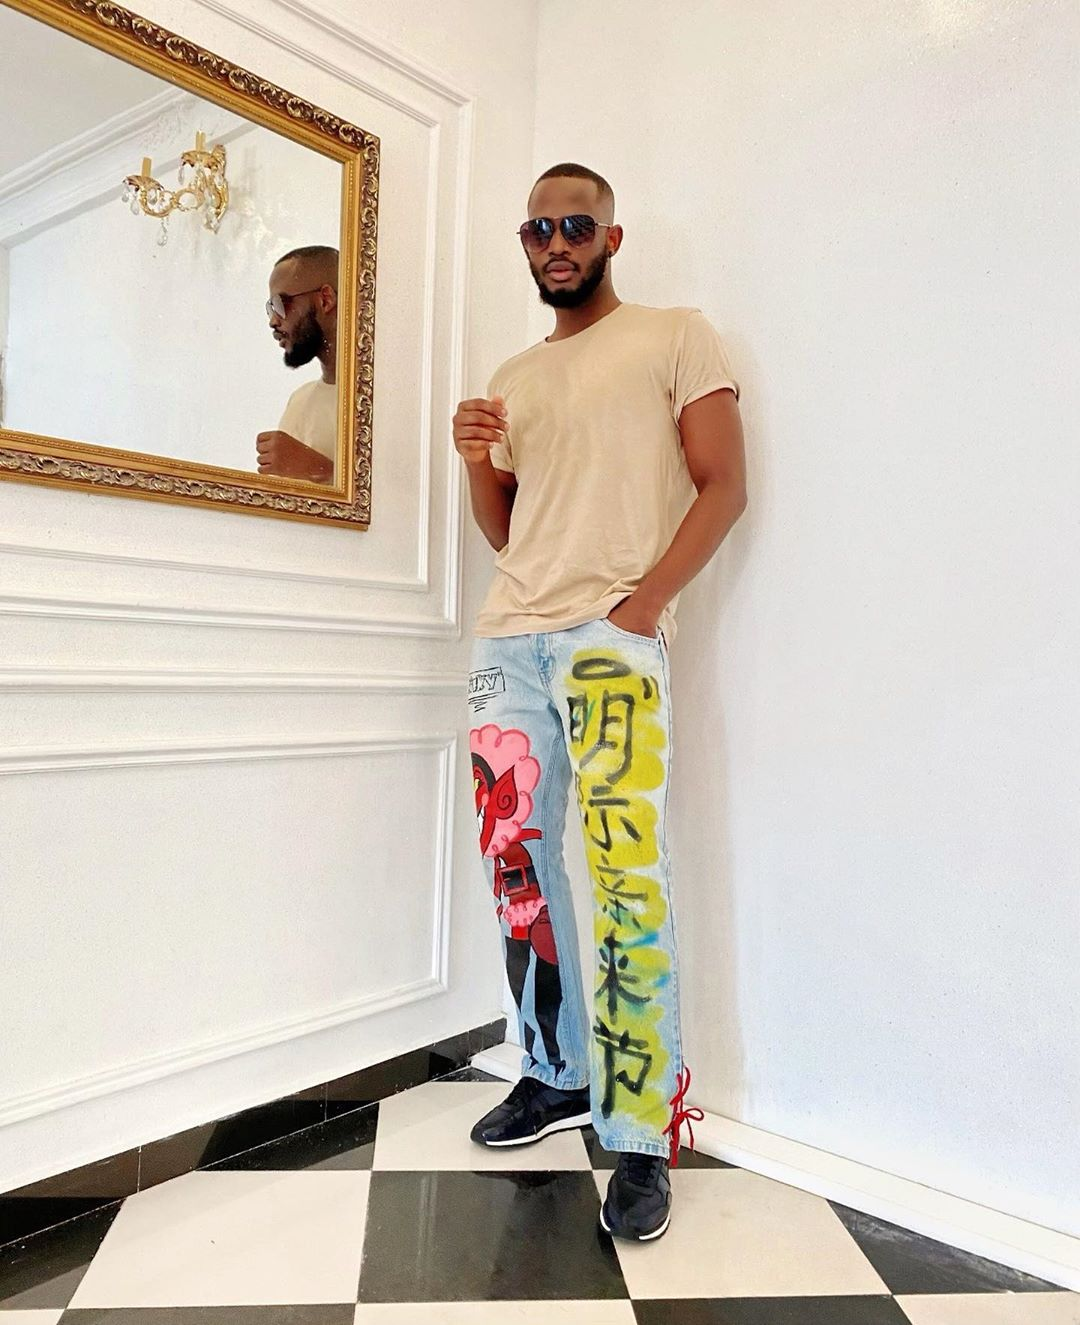 taymesan-nigerian-guy-comedian-best-dresses-hottest-most-fashionable-stylish-style-rave